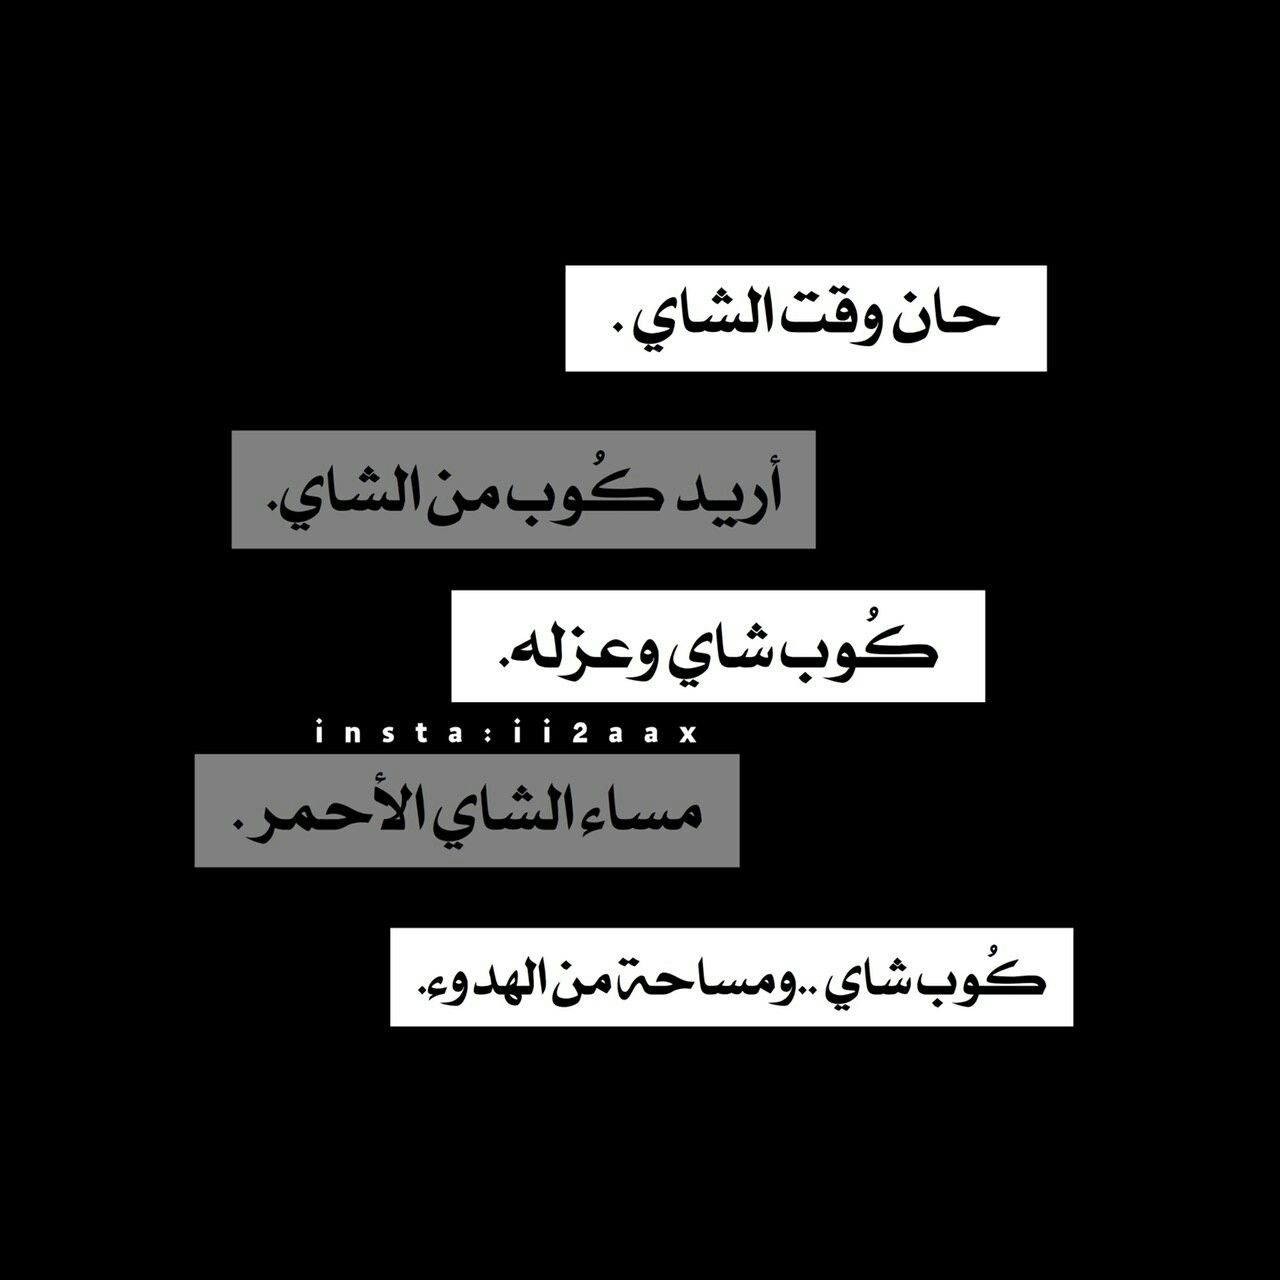 Pin By جمانه لعلي On Music Quotes Lyrics Songs Music Quotes Lyrics Music Quotes Lyrics Songs Music Quotes